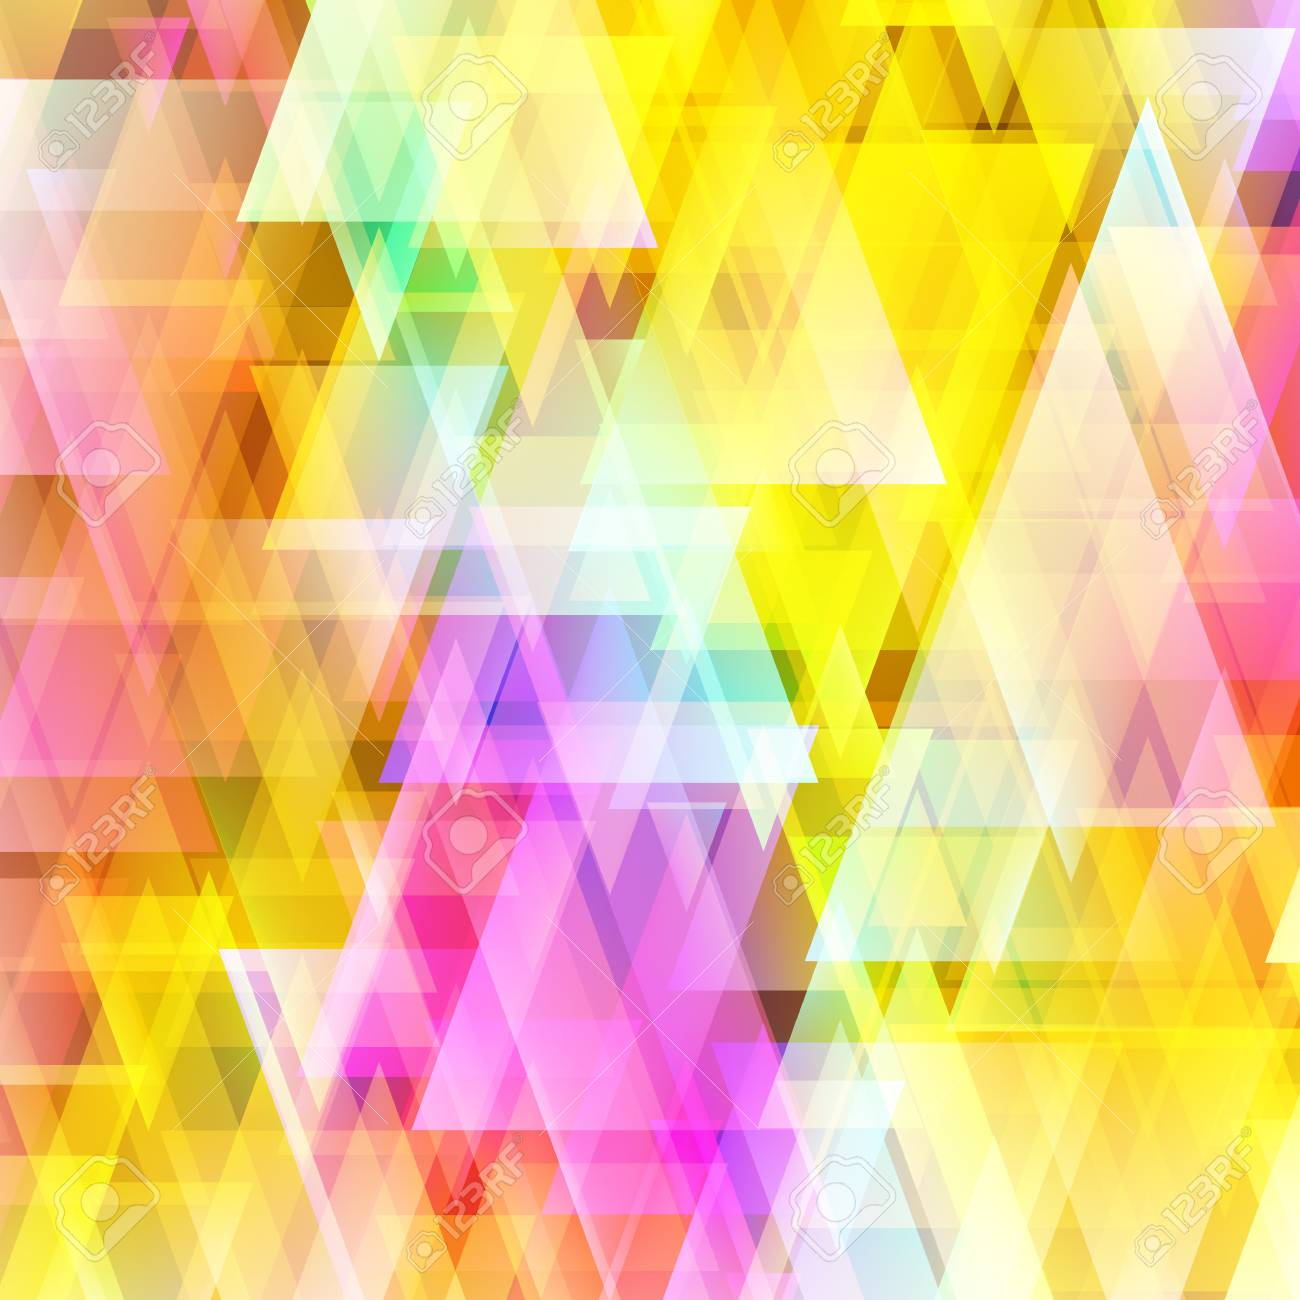 Abstract colorful triangle background. Used mesh layers and transparency layers. Stock Vector - 27383418